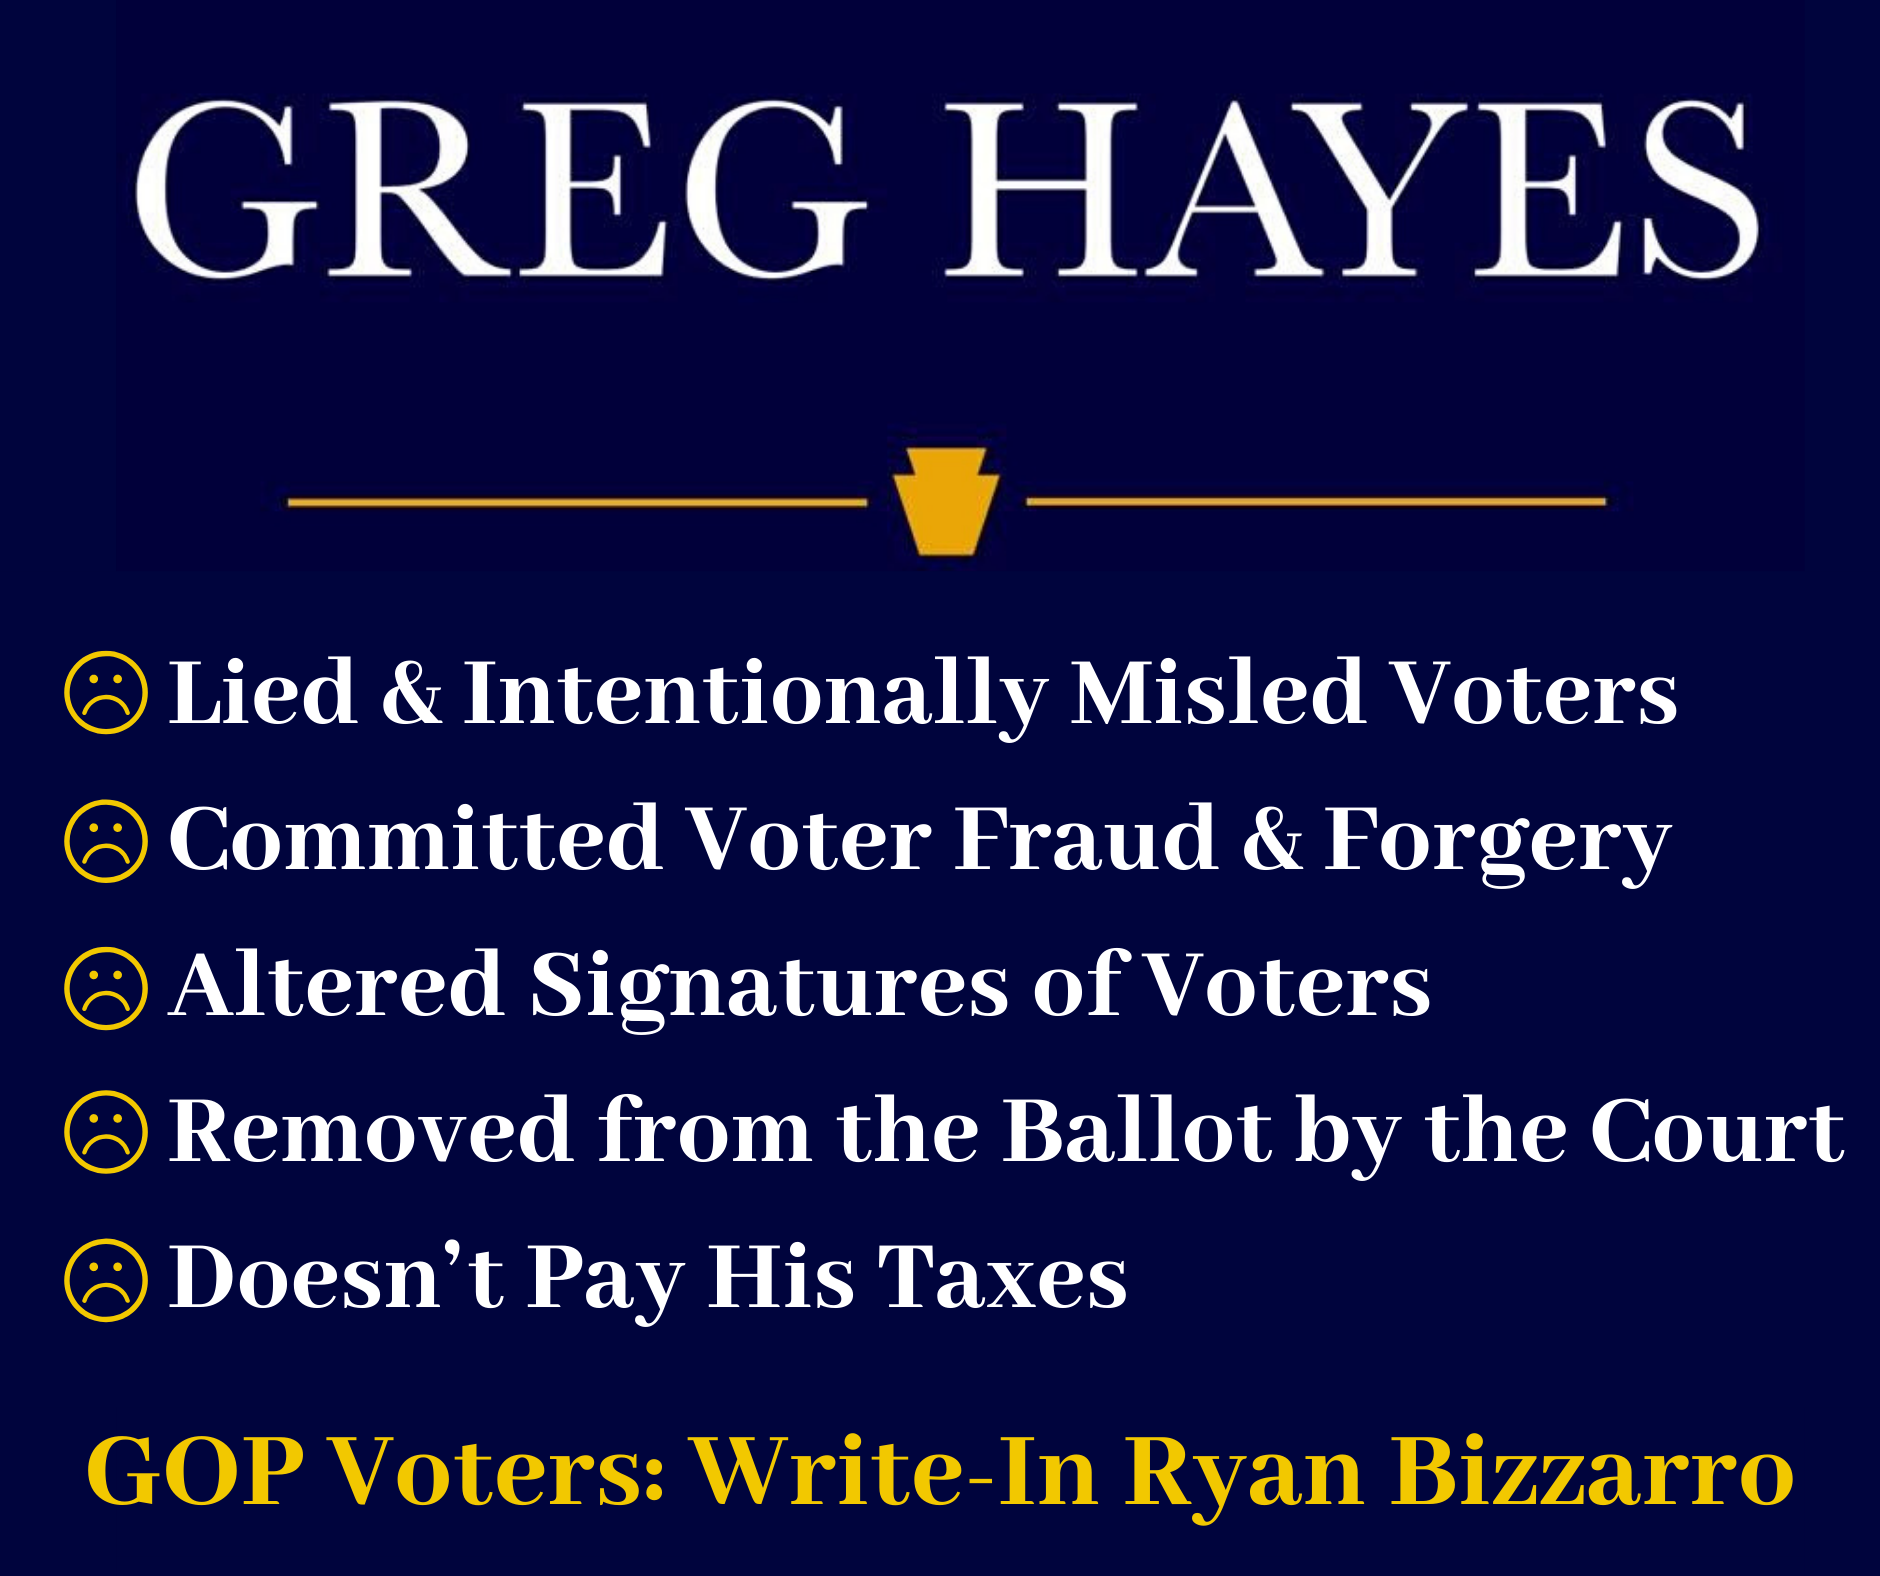 George Hayes Committed Forgery and was Removed from the Ballot